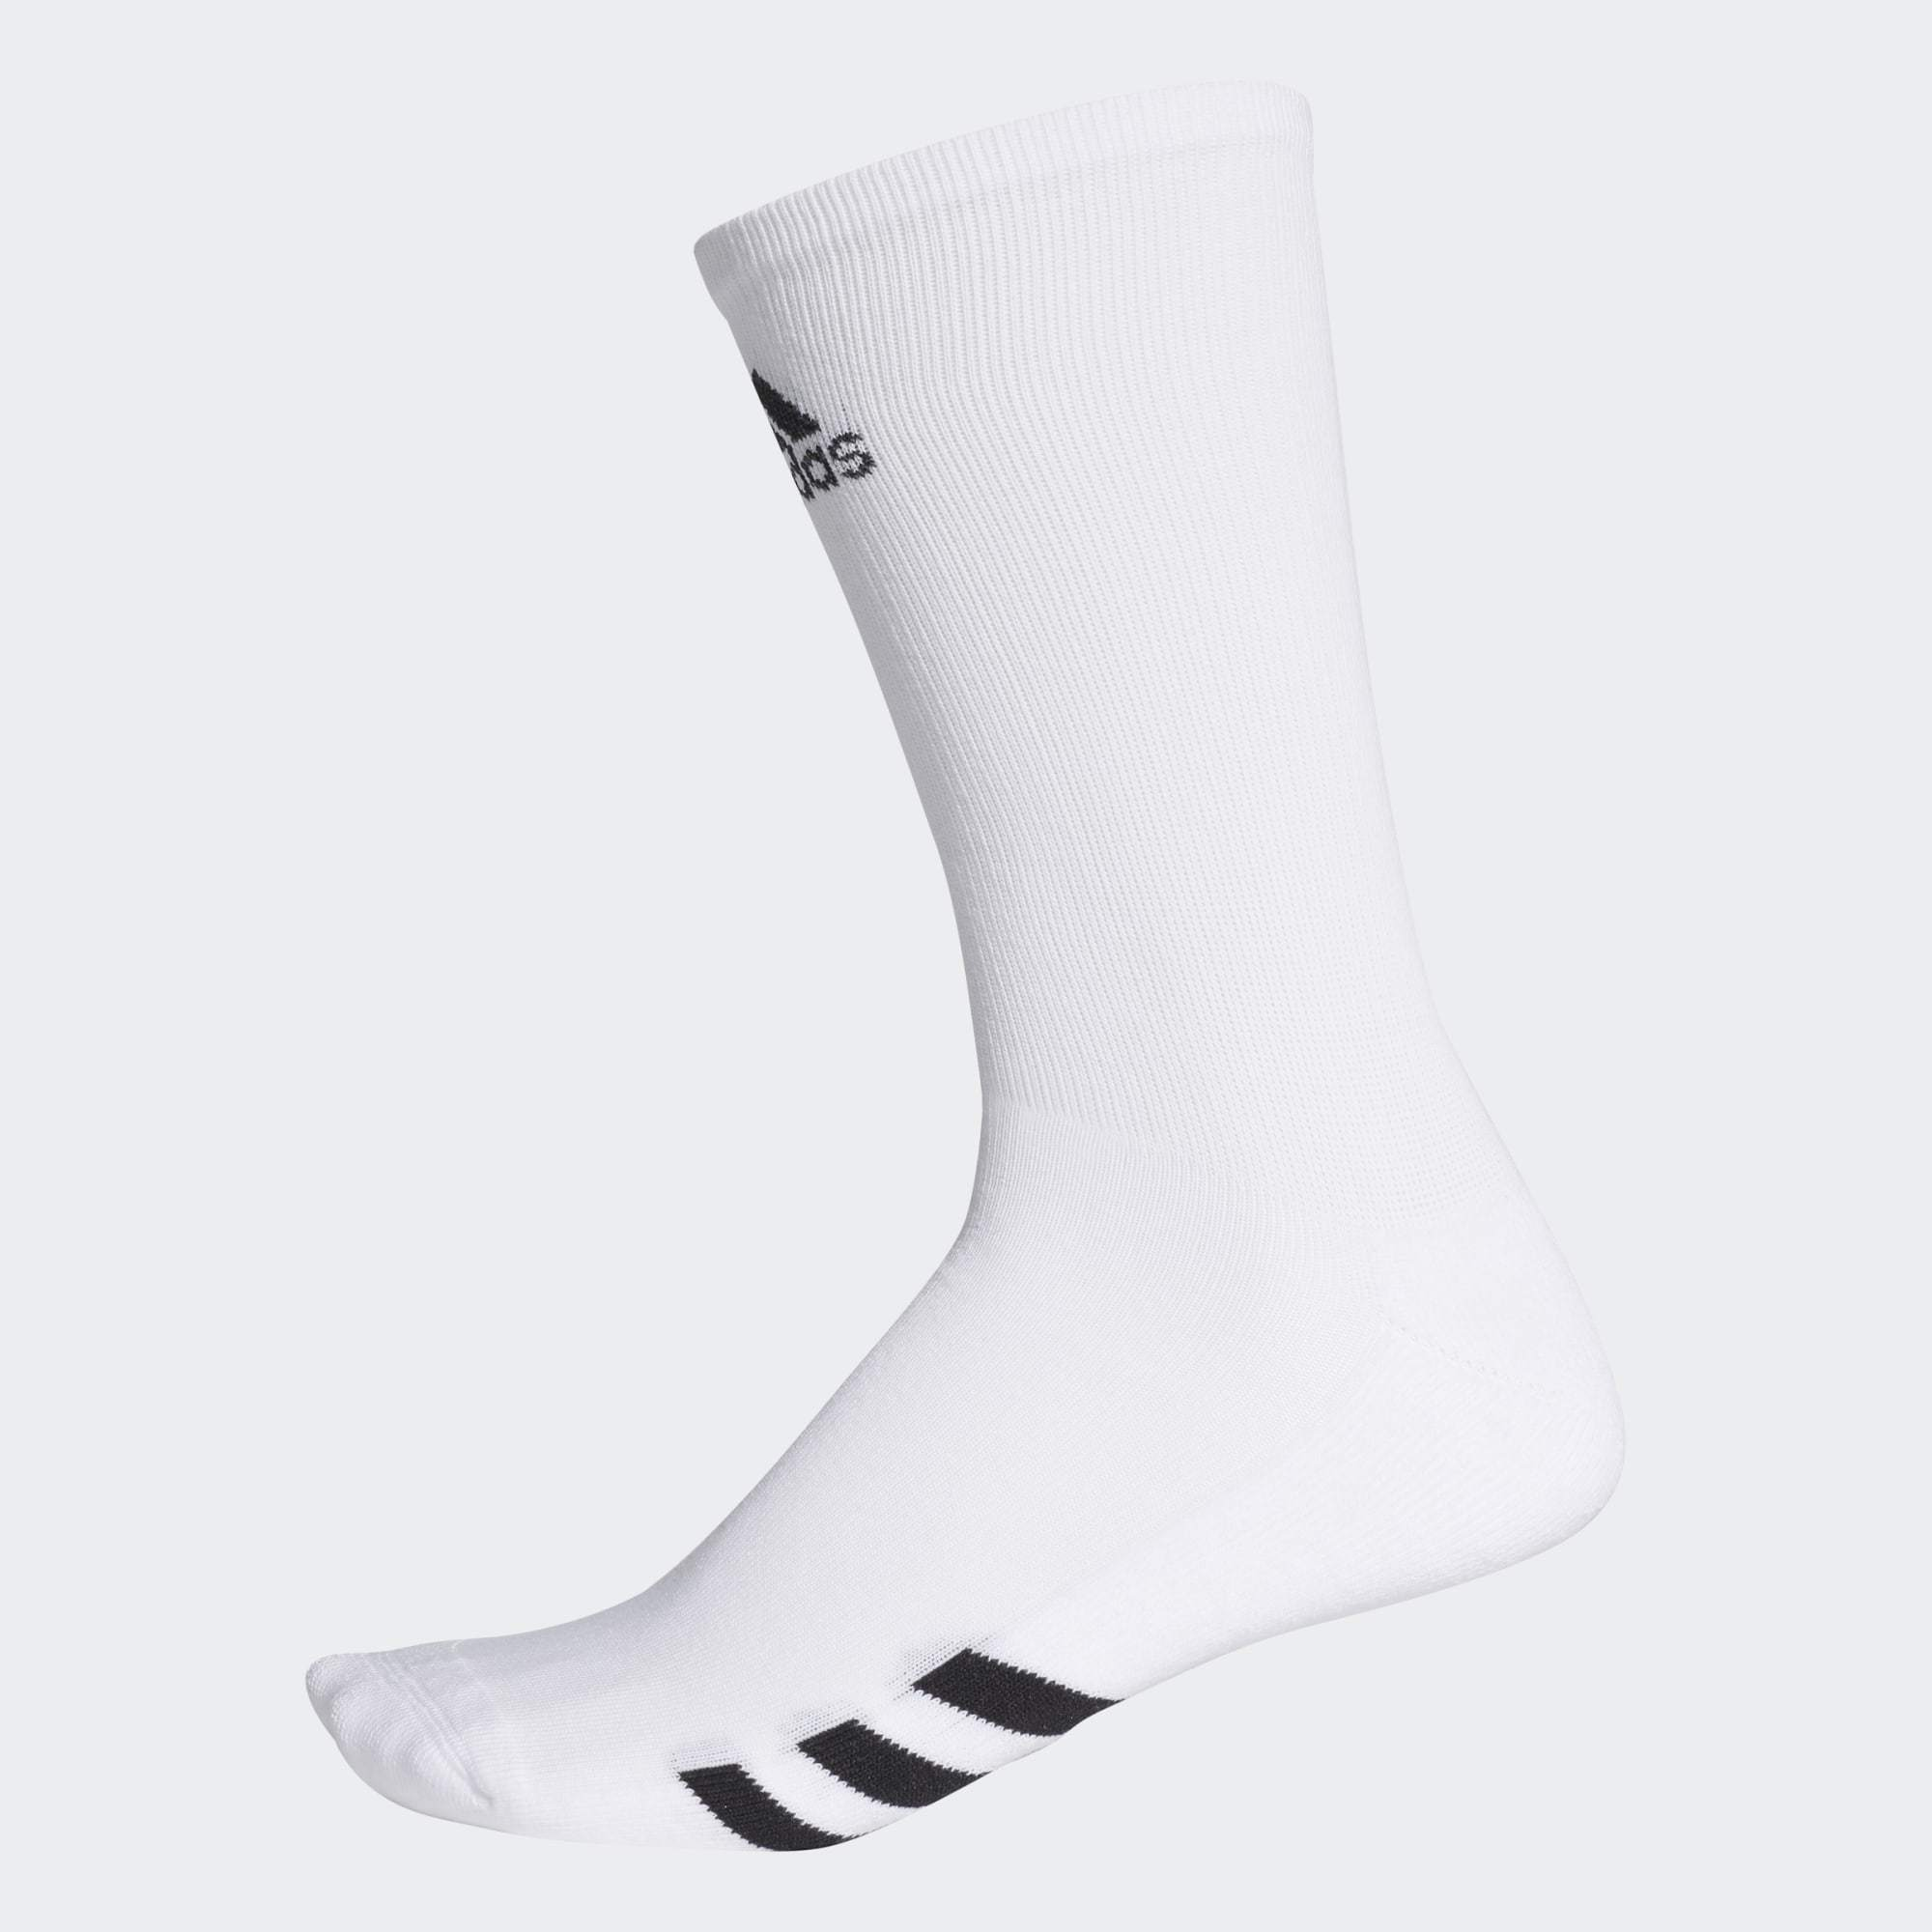 CALCETINES ADIDAS CLASSIC CREW PACK 3 CALCETINES ADIDAS HOMBRE ADIDAS